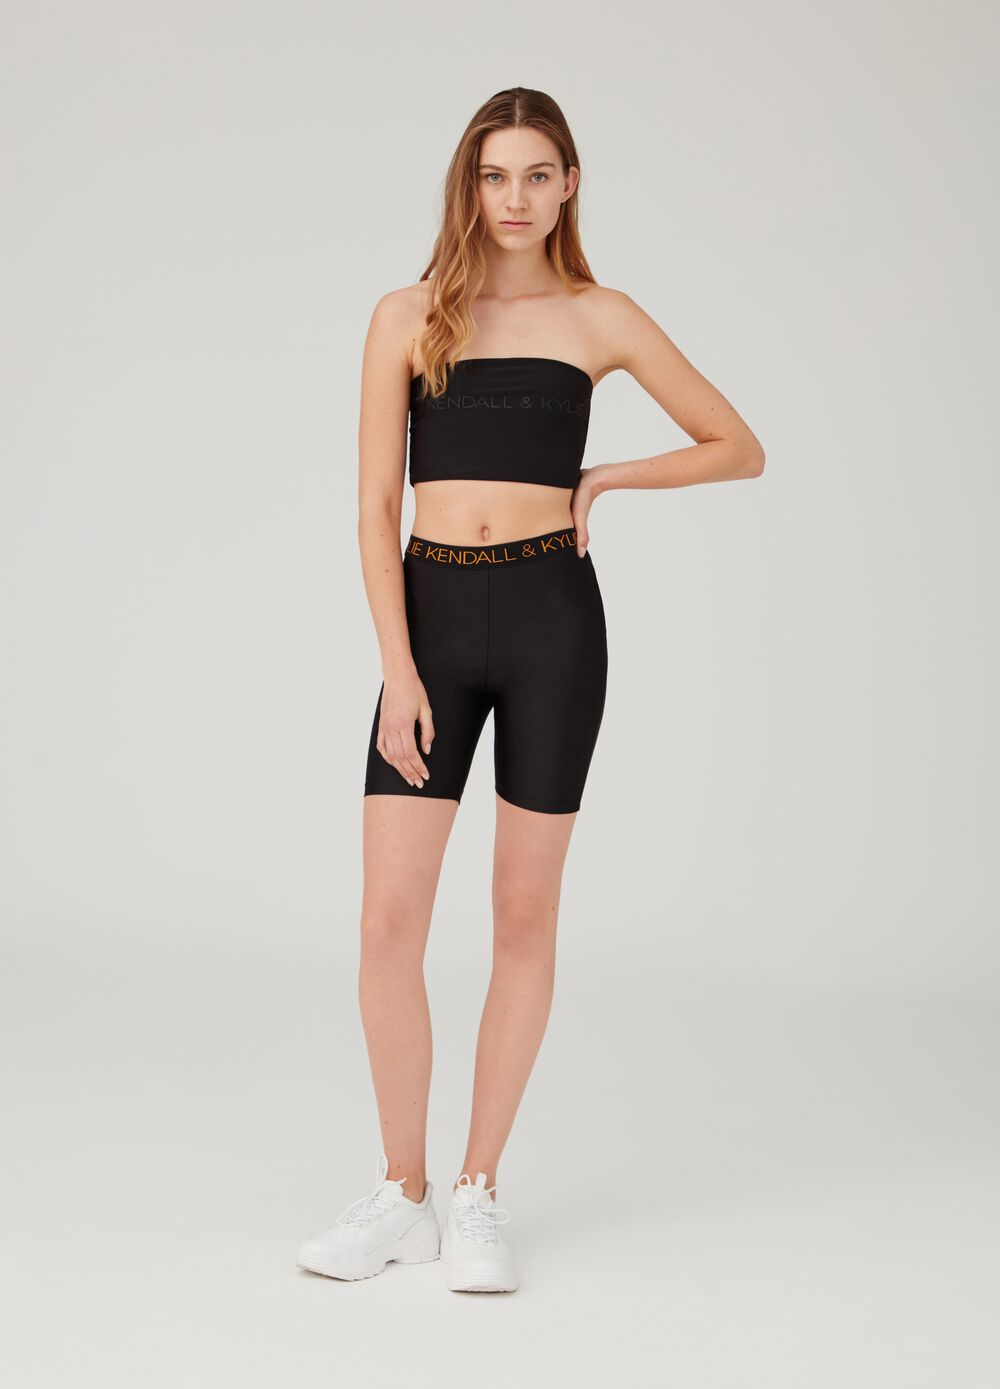 K+K for OVS short stretch leggings